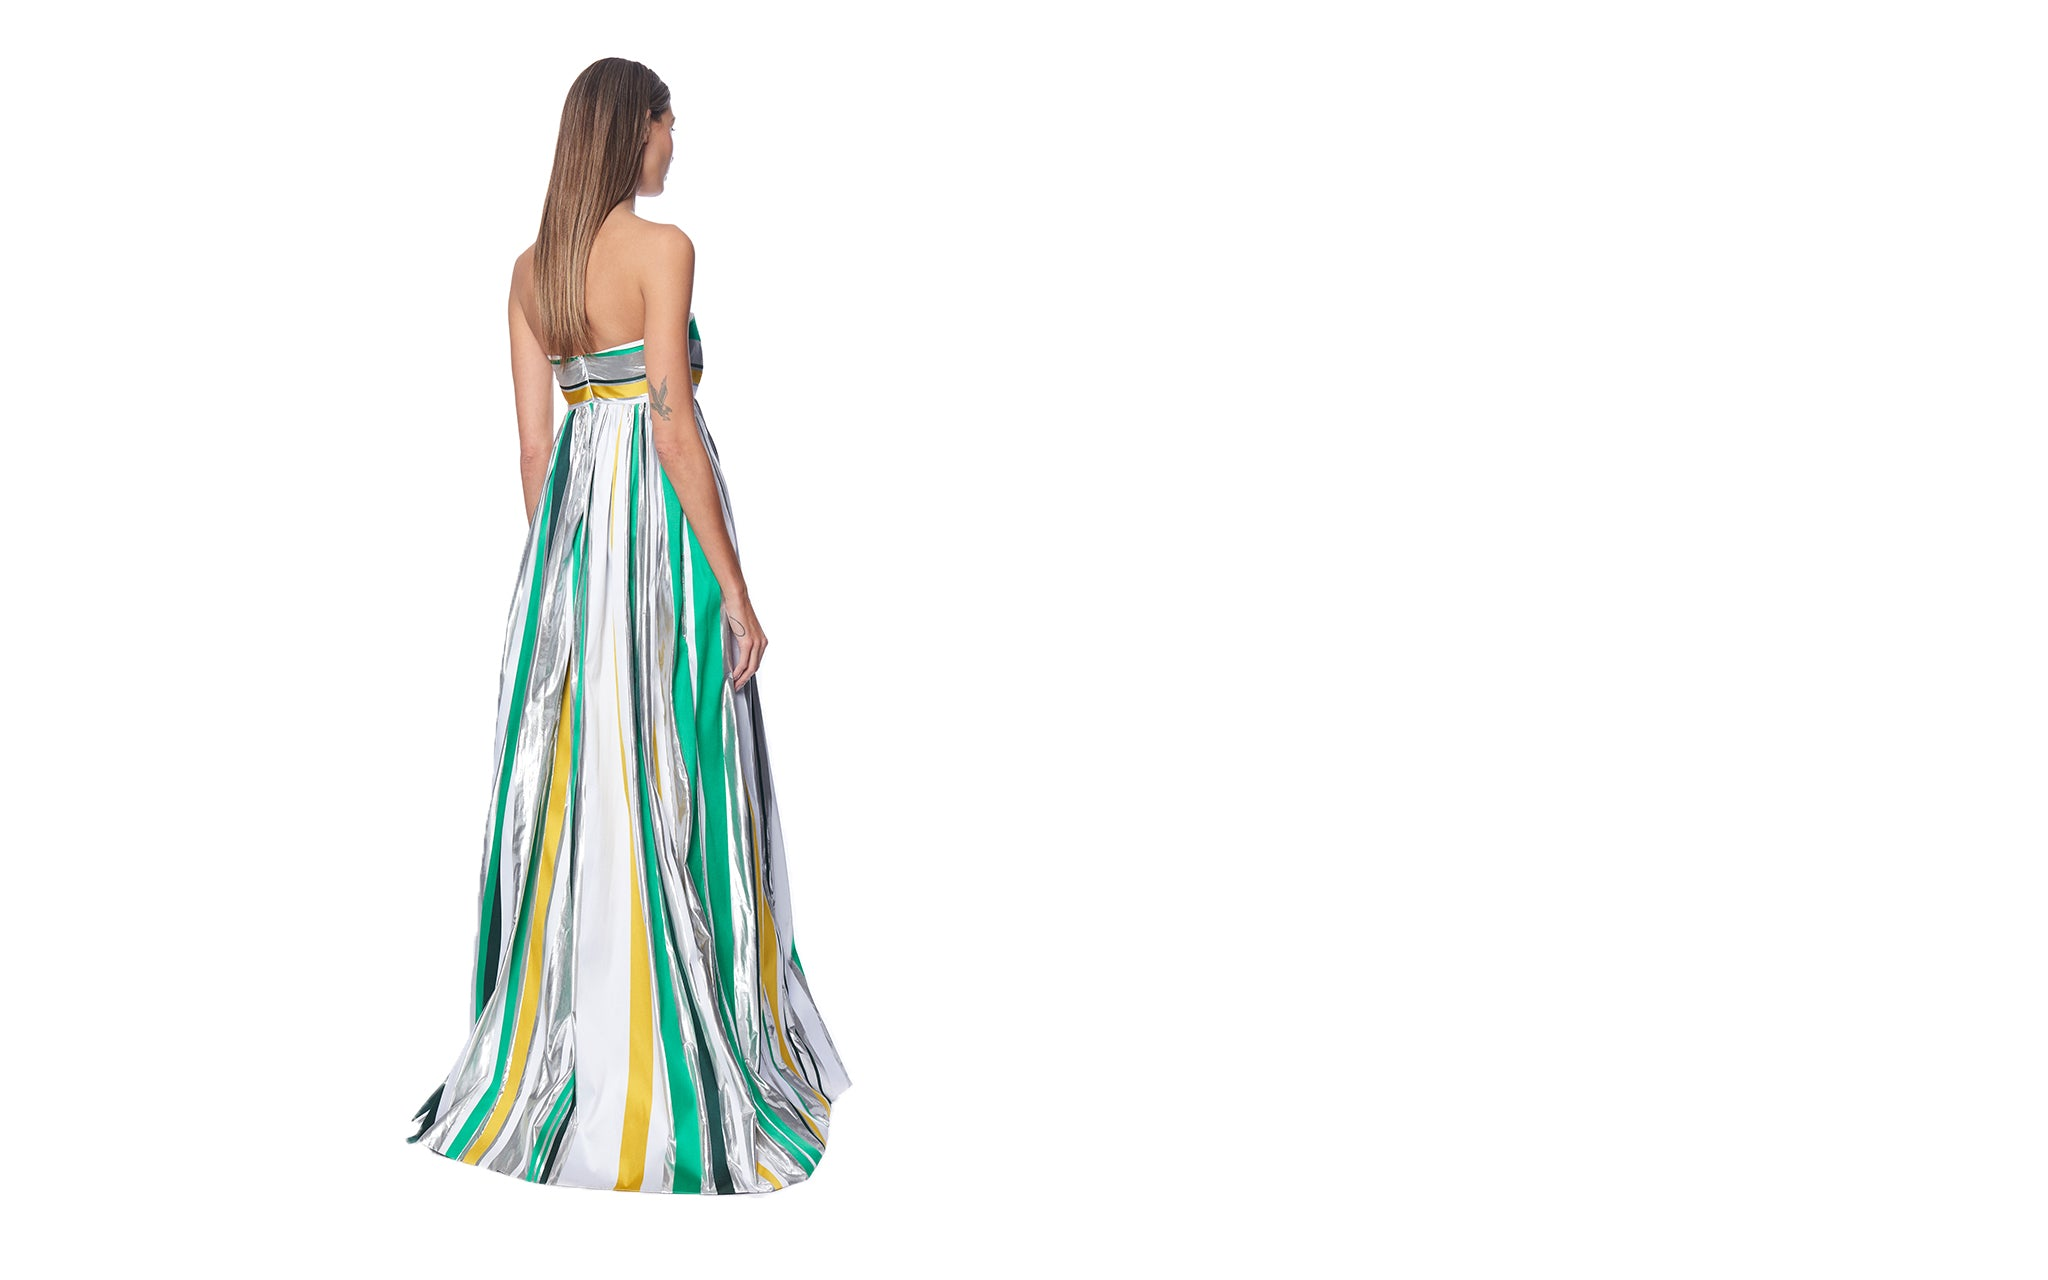 LAYAS STRAPLESS GOWN